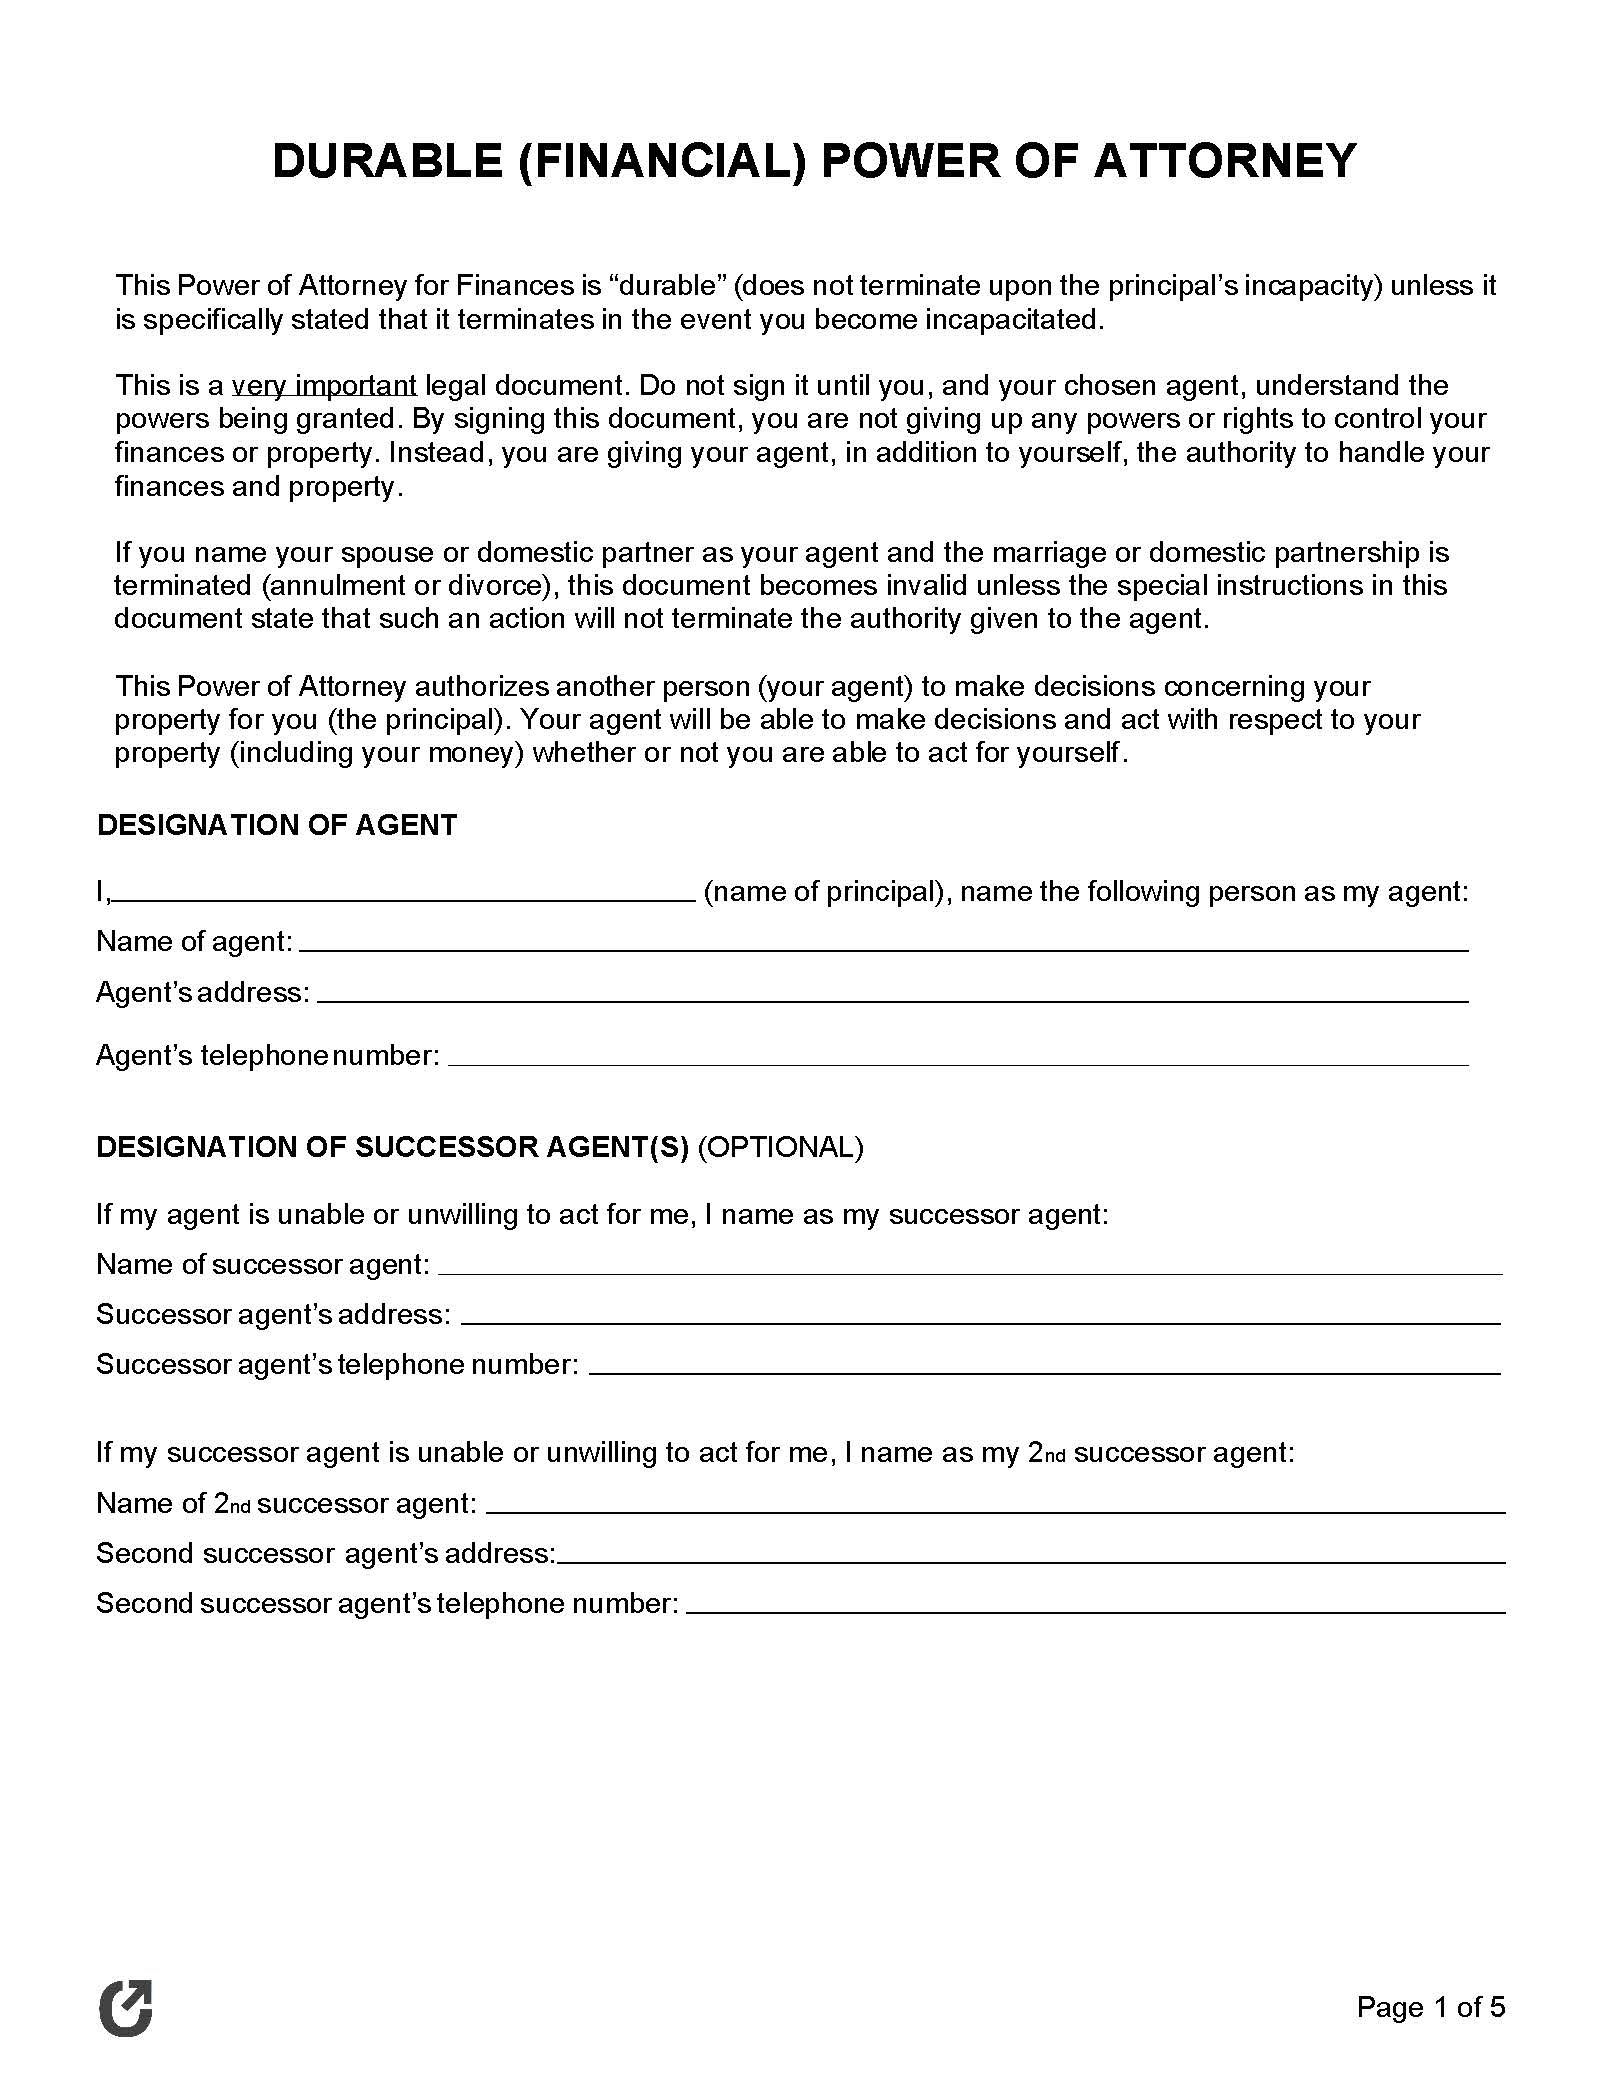 Free Durable Power Of Attorney Forms Pdf Word